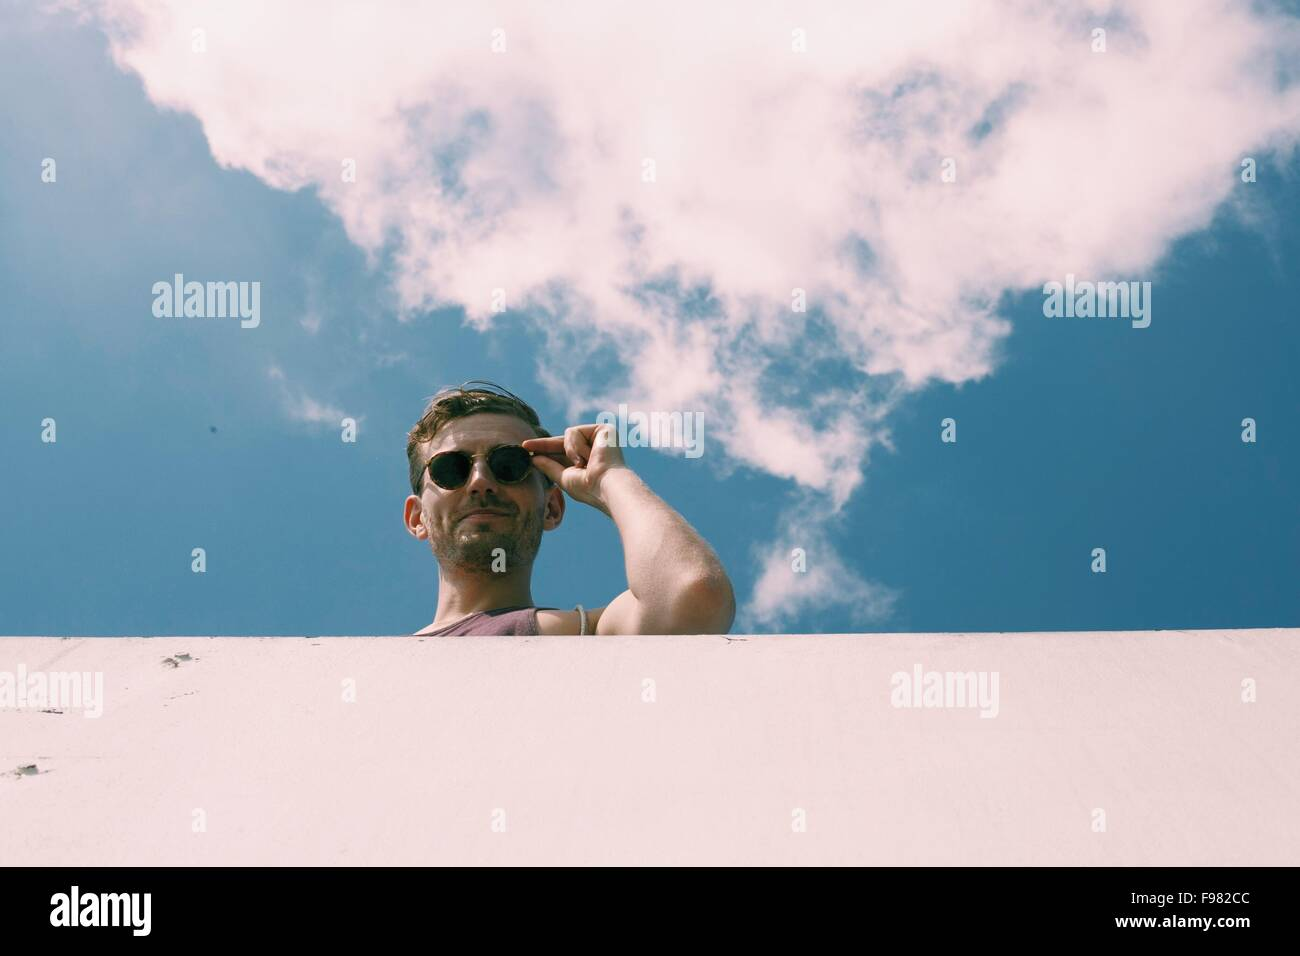 Low Angle View of Young Man Against Sky Photo Stock